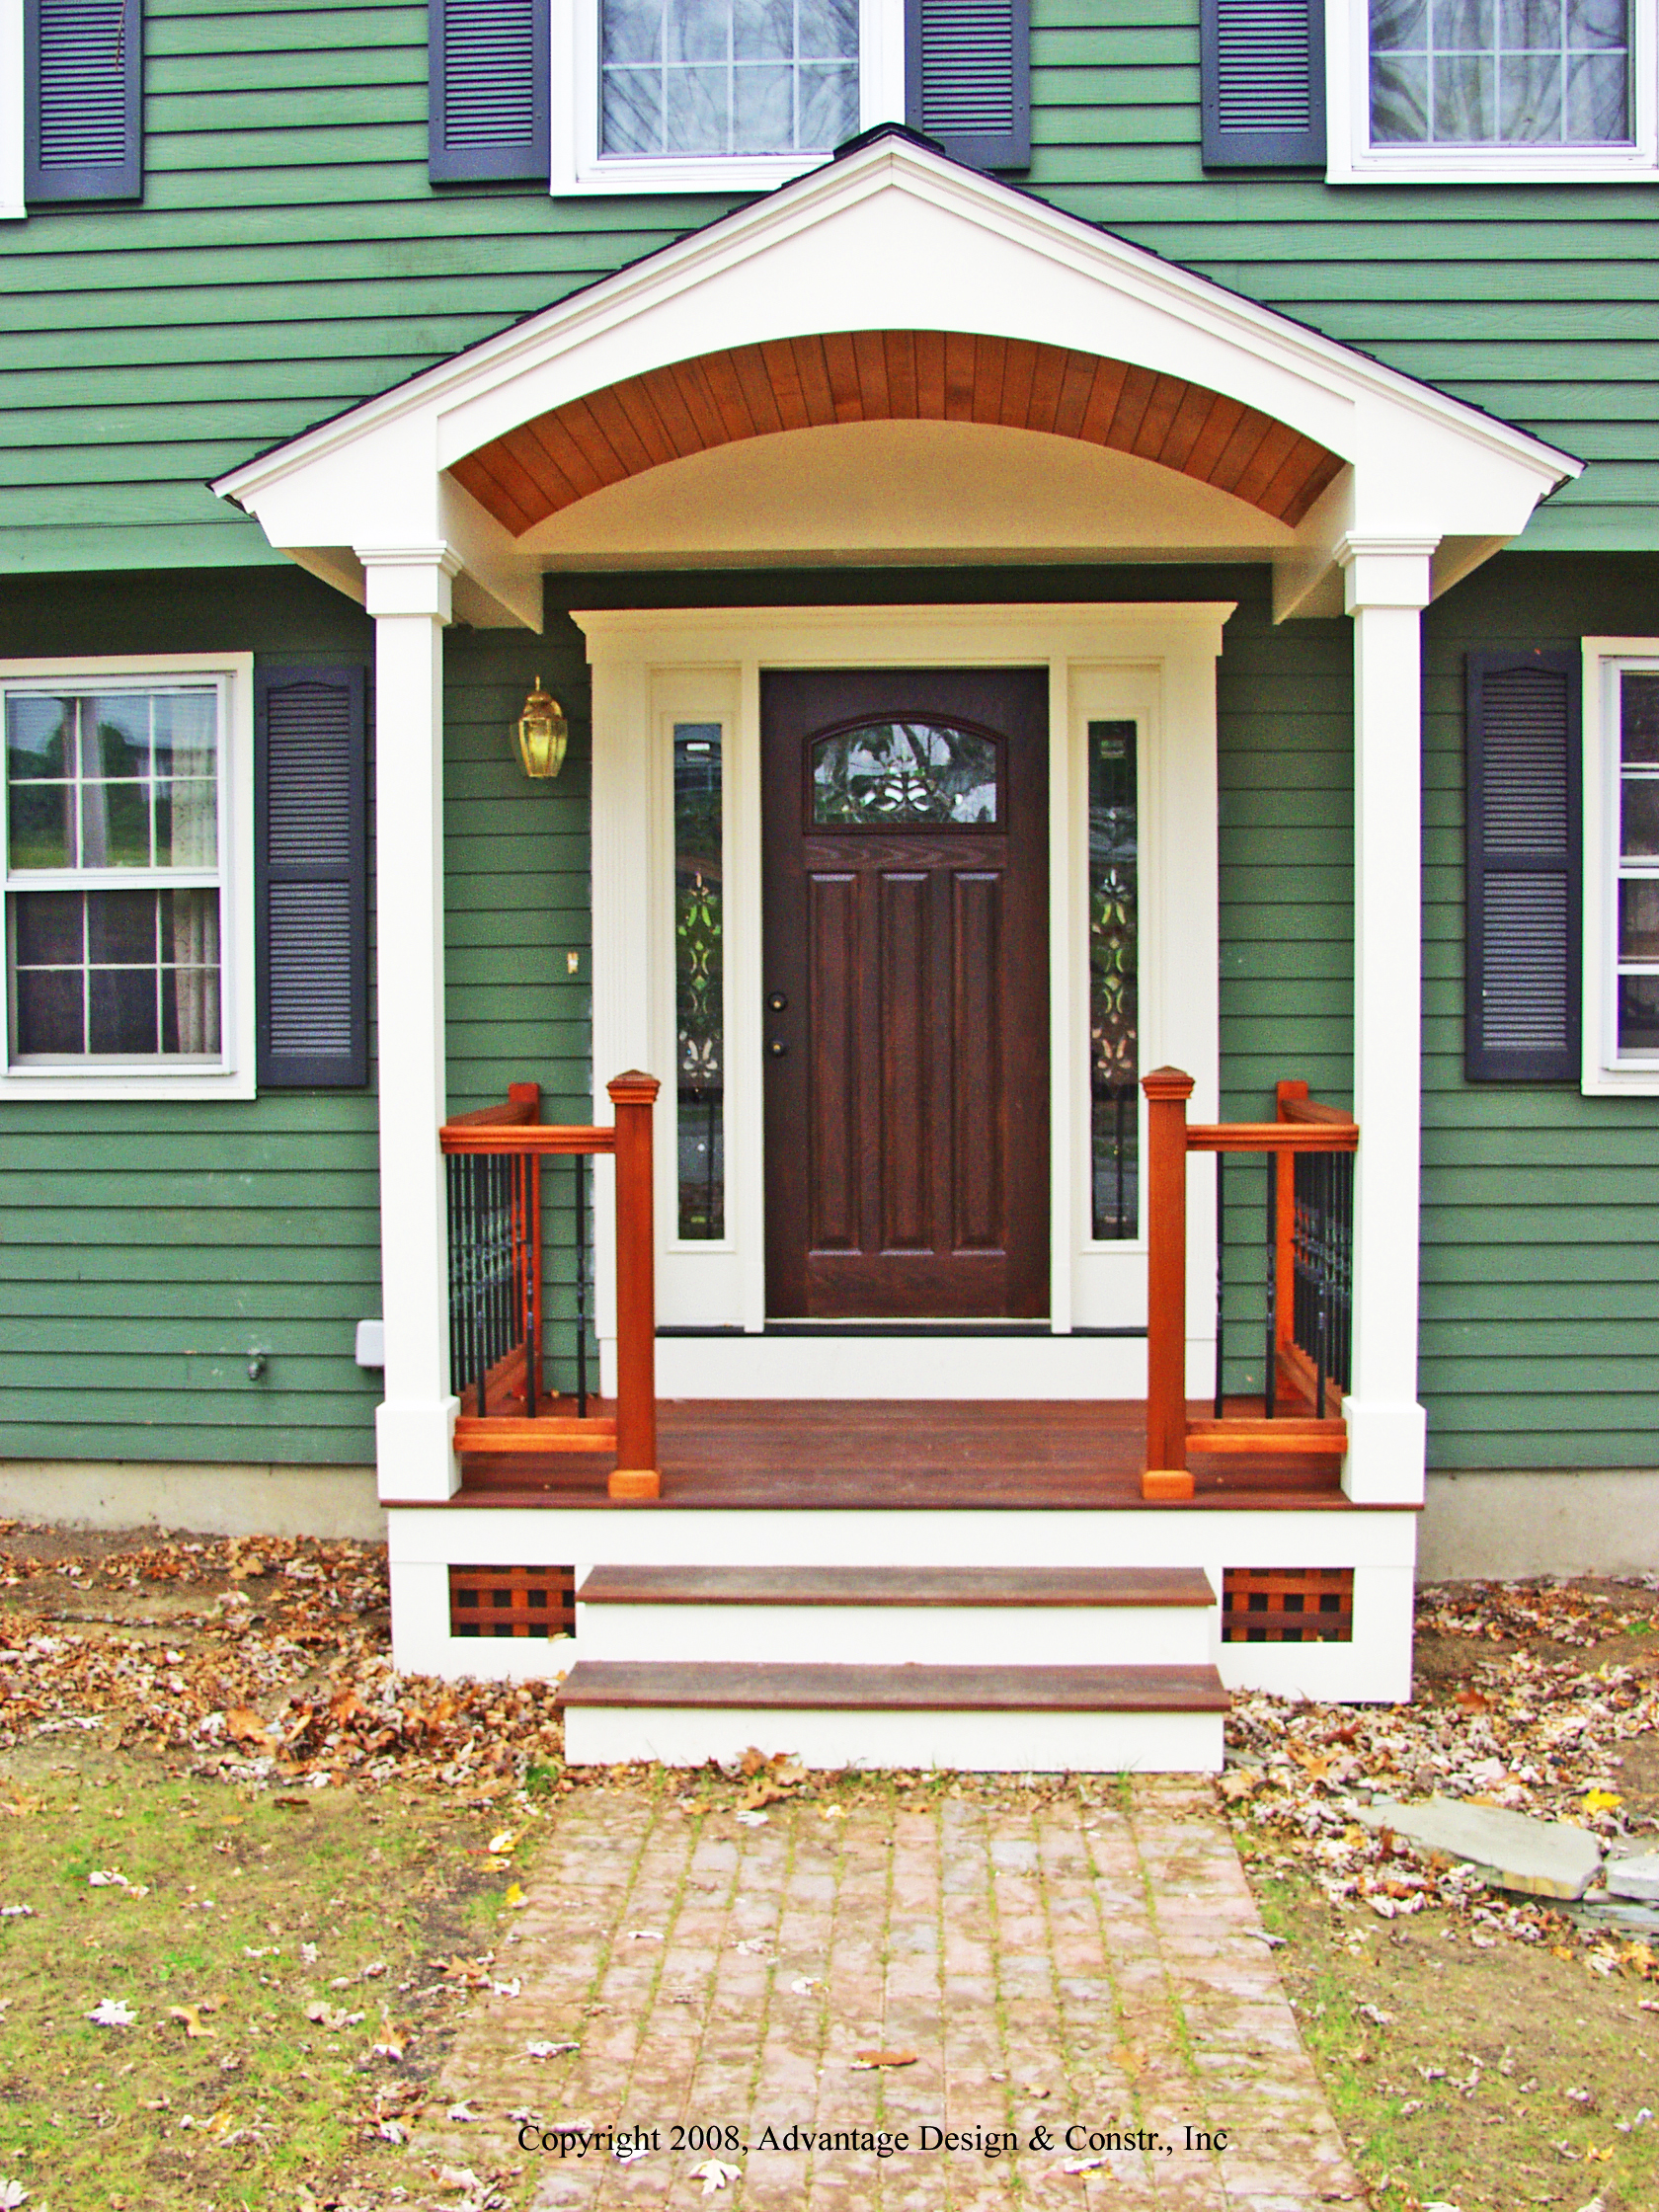 Luxury front porch skirting small garden landscape home design ideas home decor style pinterest small garden landscape front porches and porch